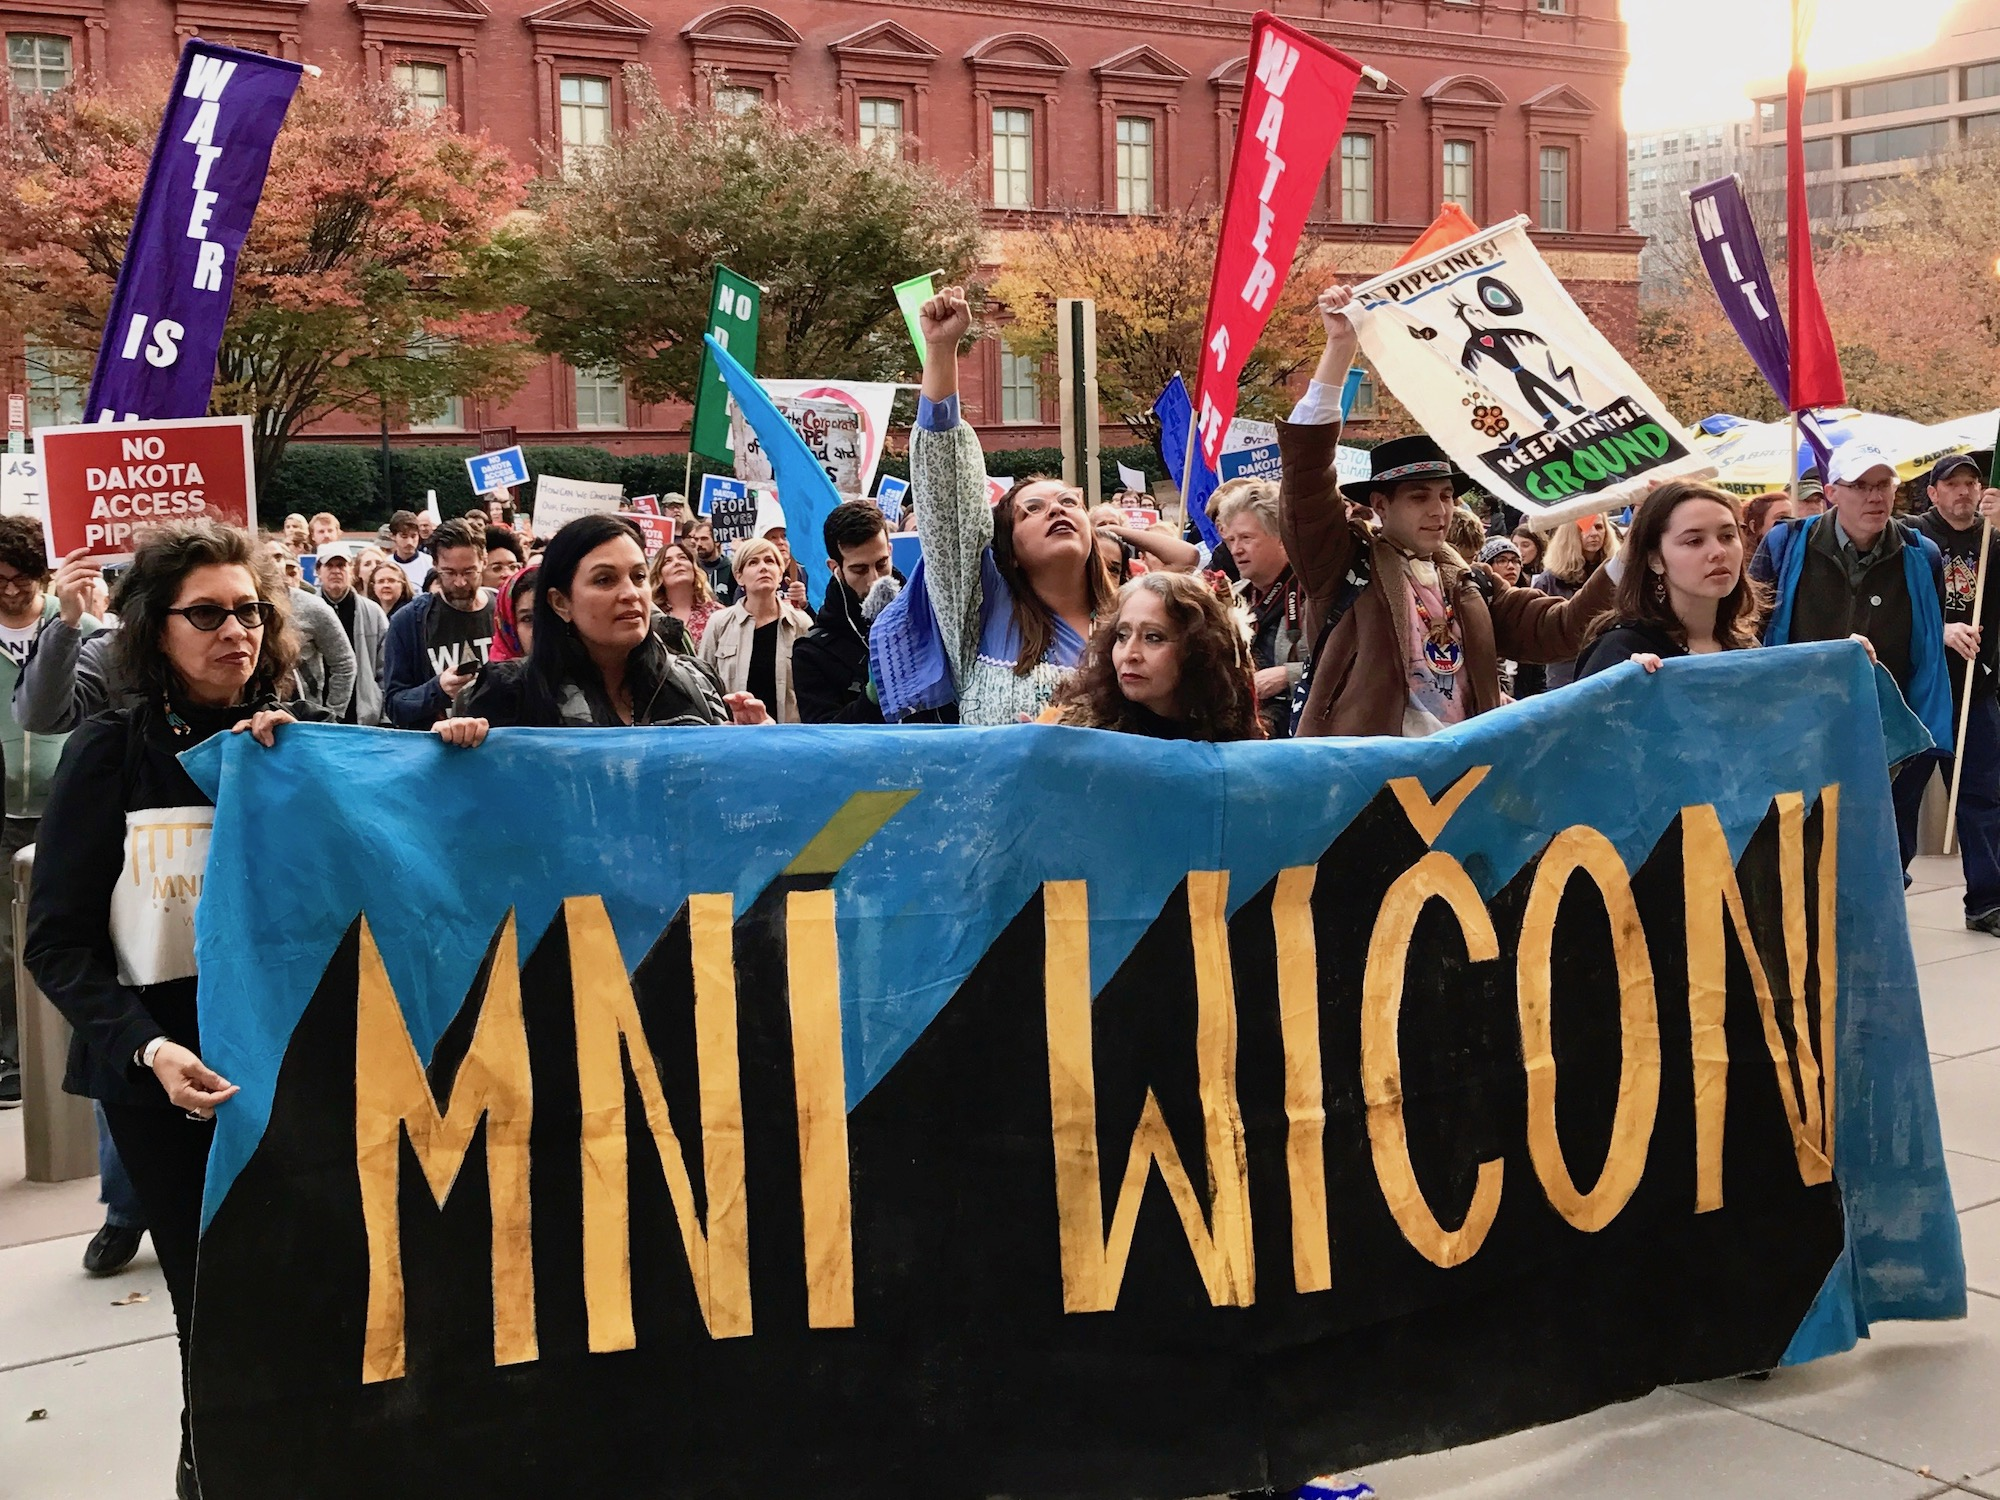 Michelle LaPena: Lessons from the movement at Standing Rock